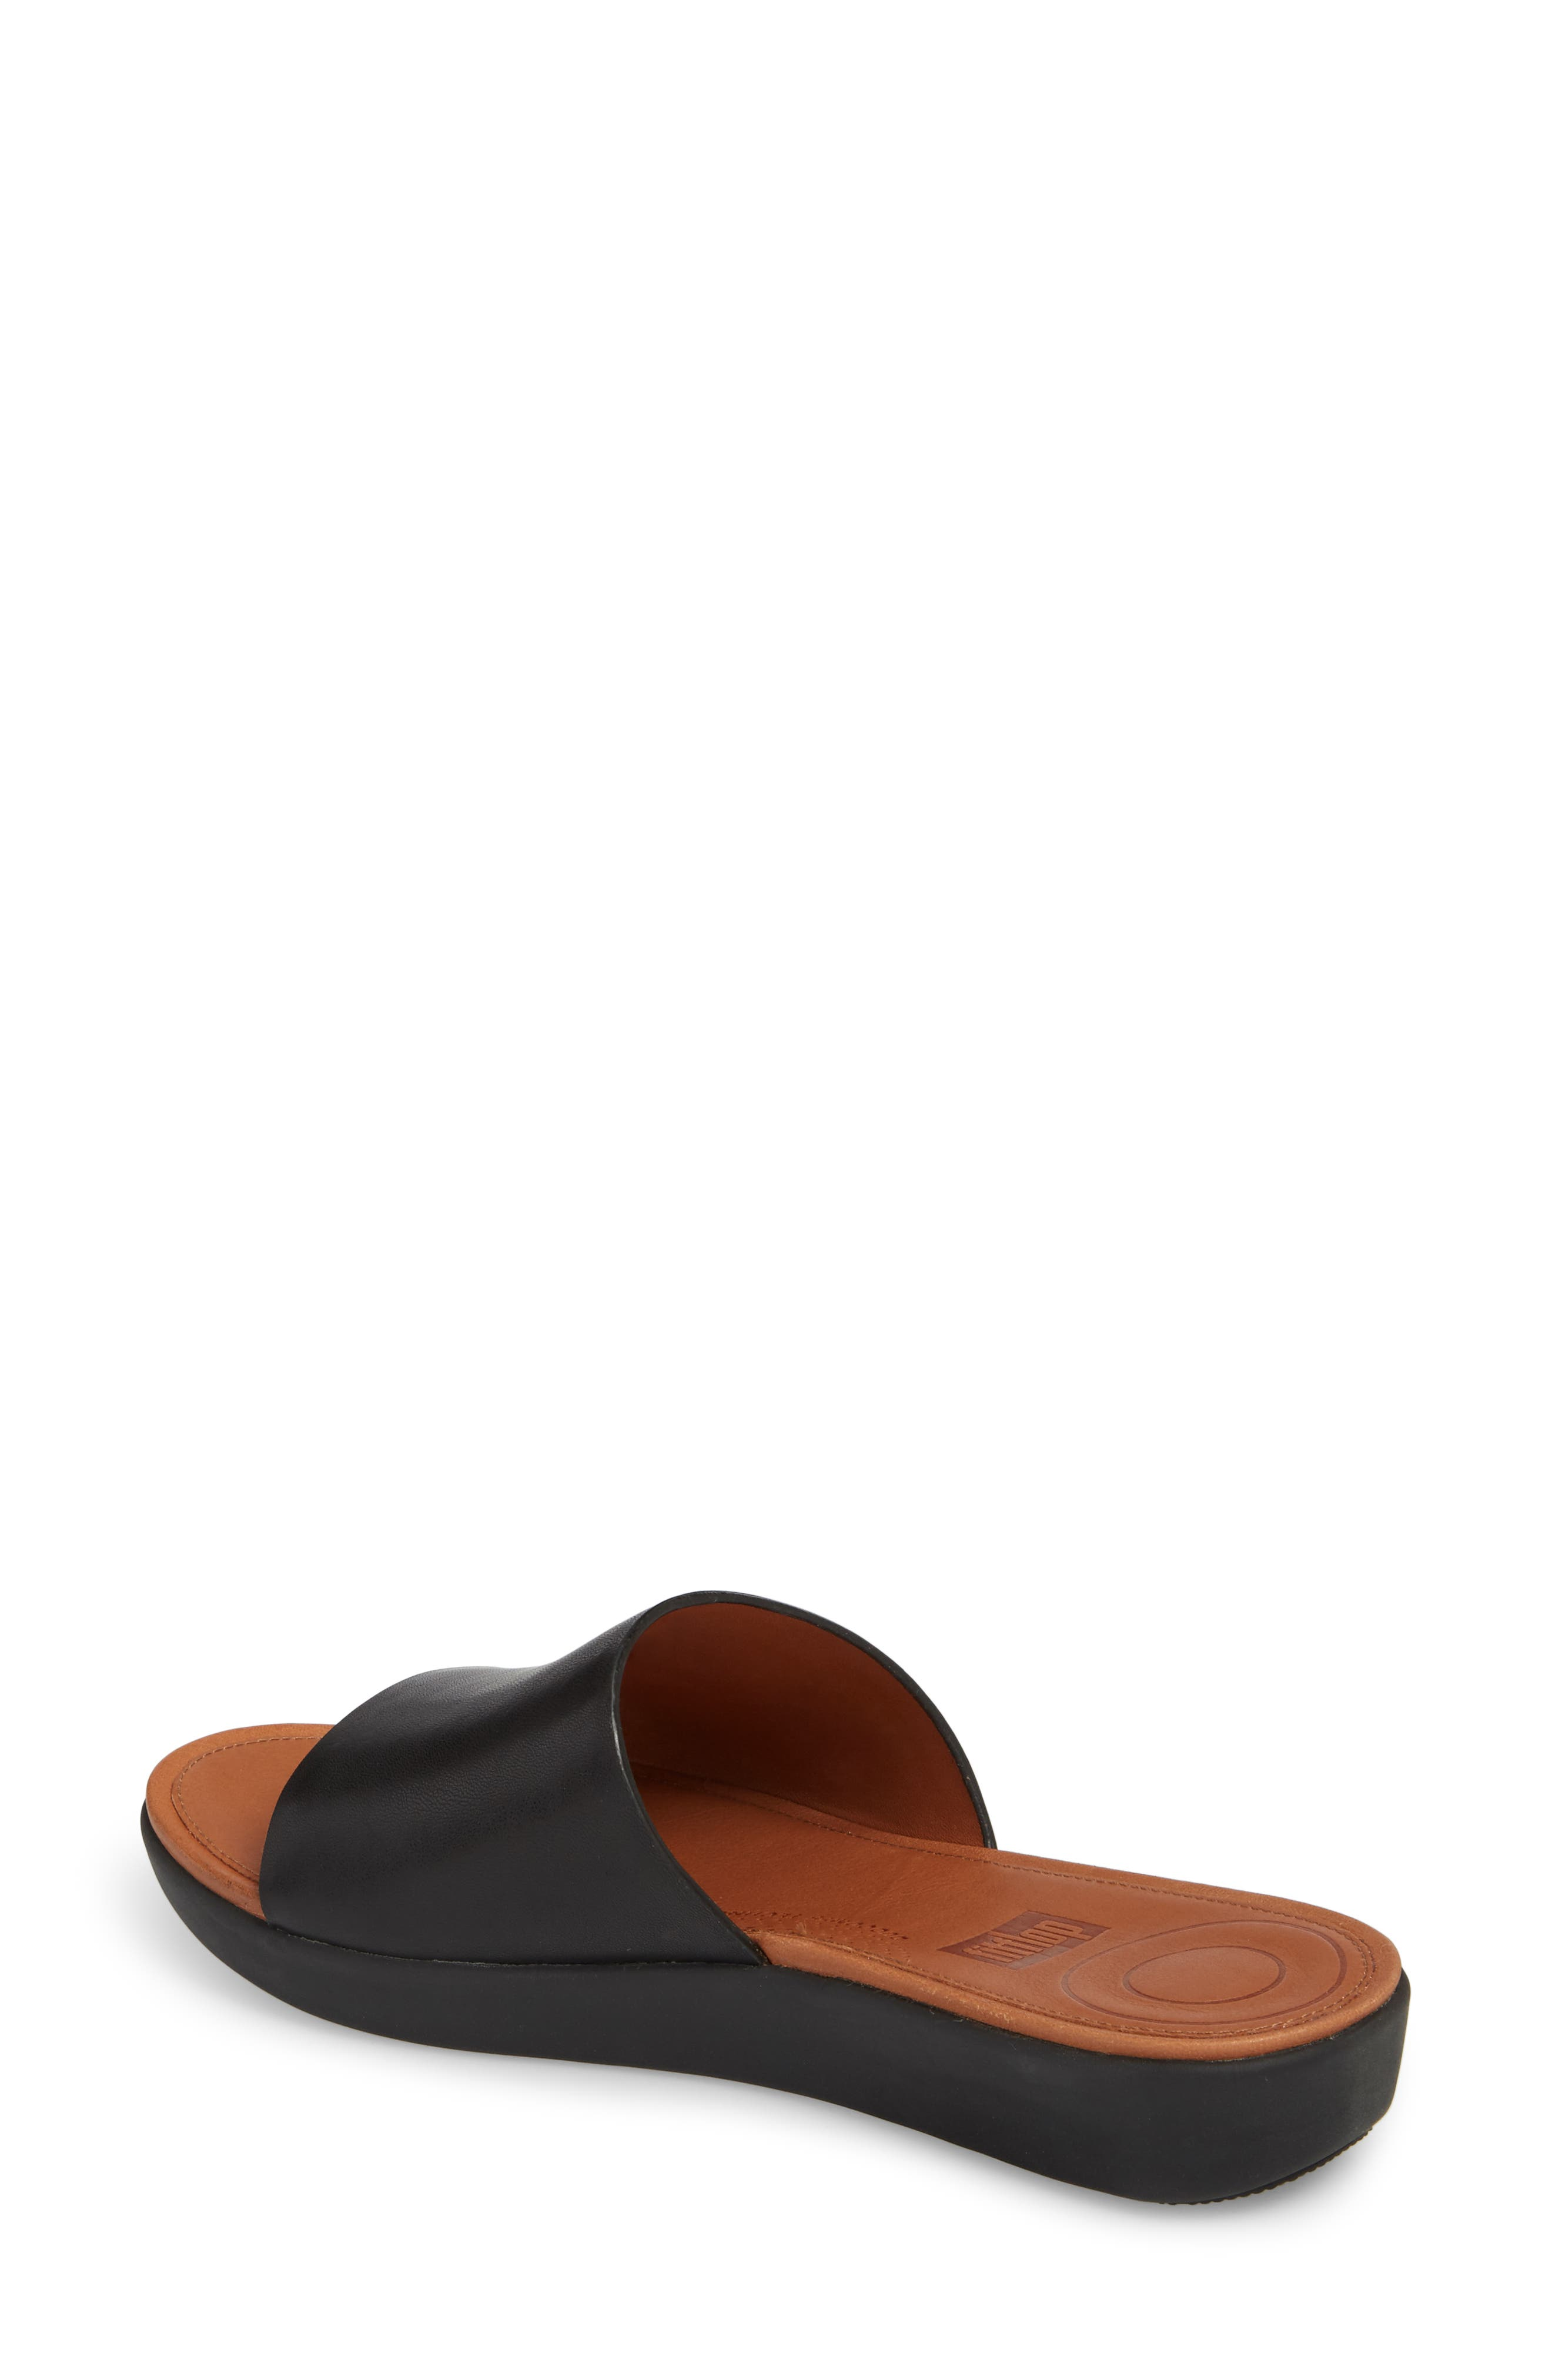 Sola Sandal,                             Alternate thumbnail 2, color,                             BLACK LEATHER